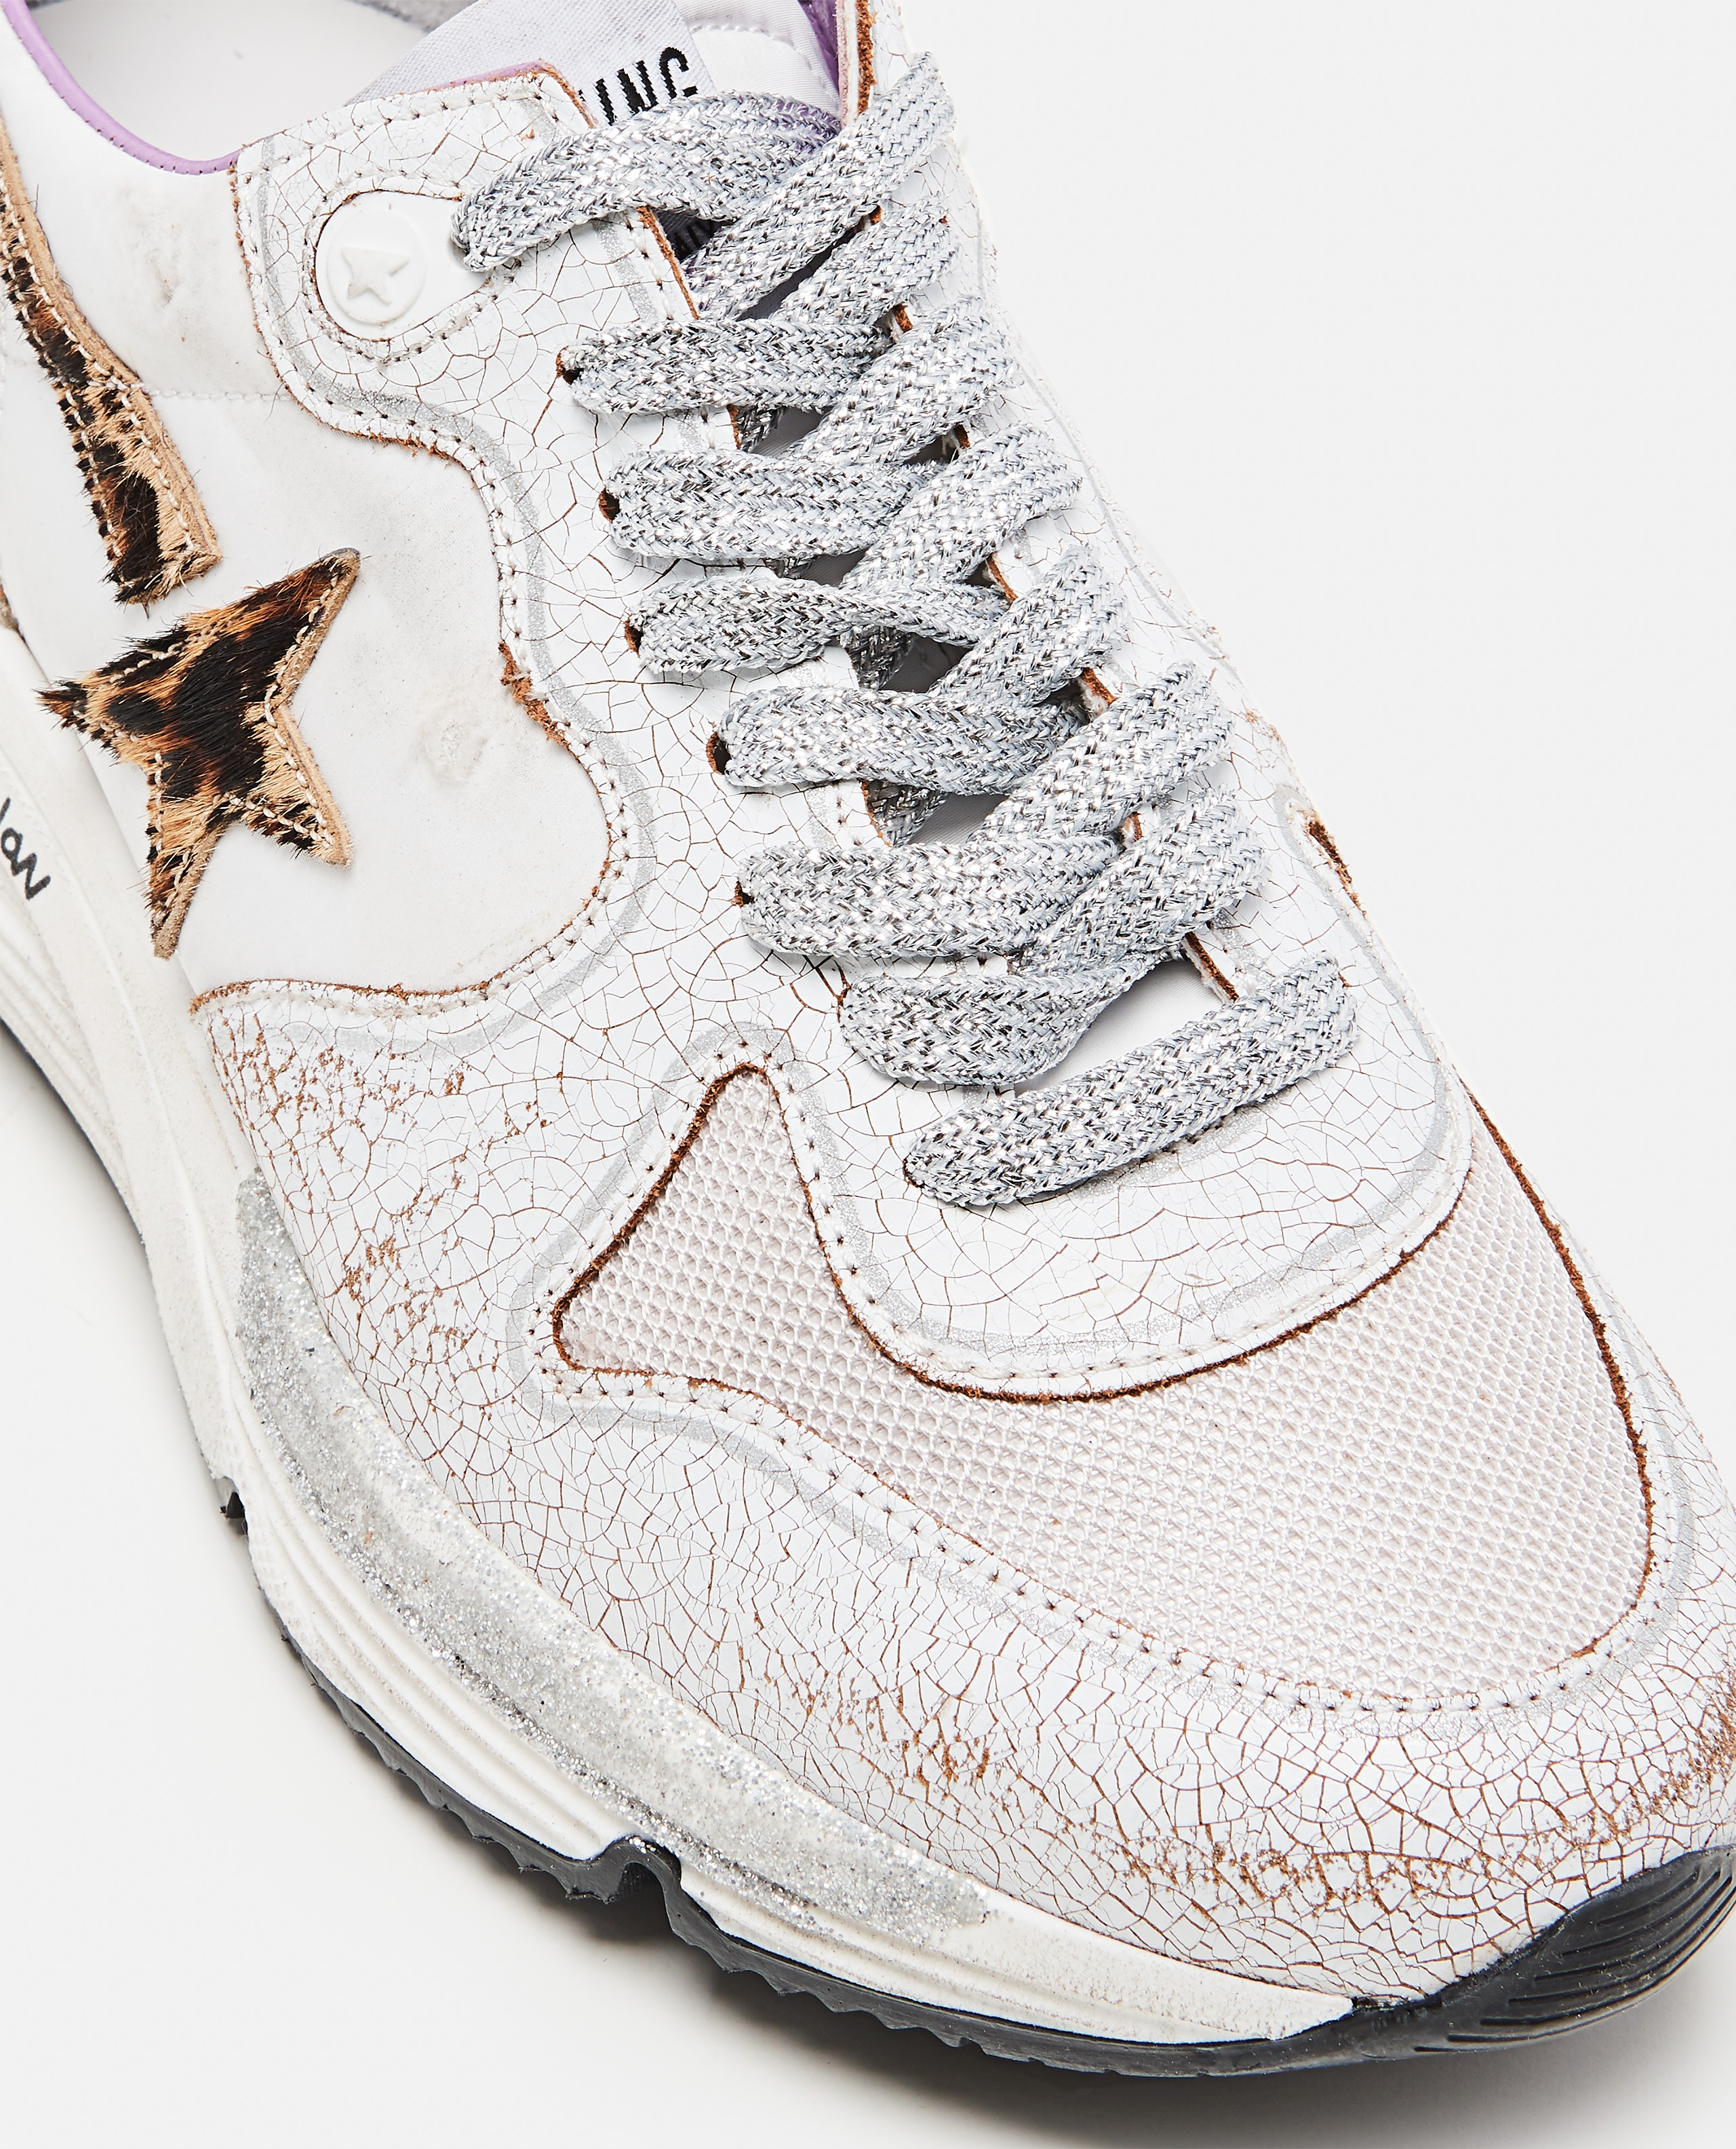 Golden Goose running sole sneakers in nylon and crackle leather Donna Golden Goose 000286920042316 4